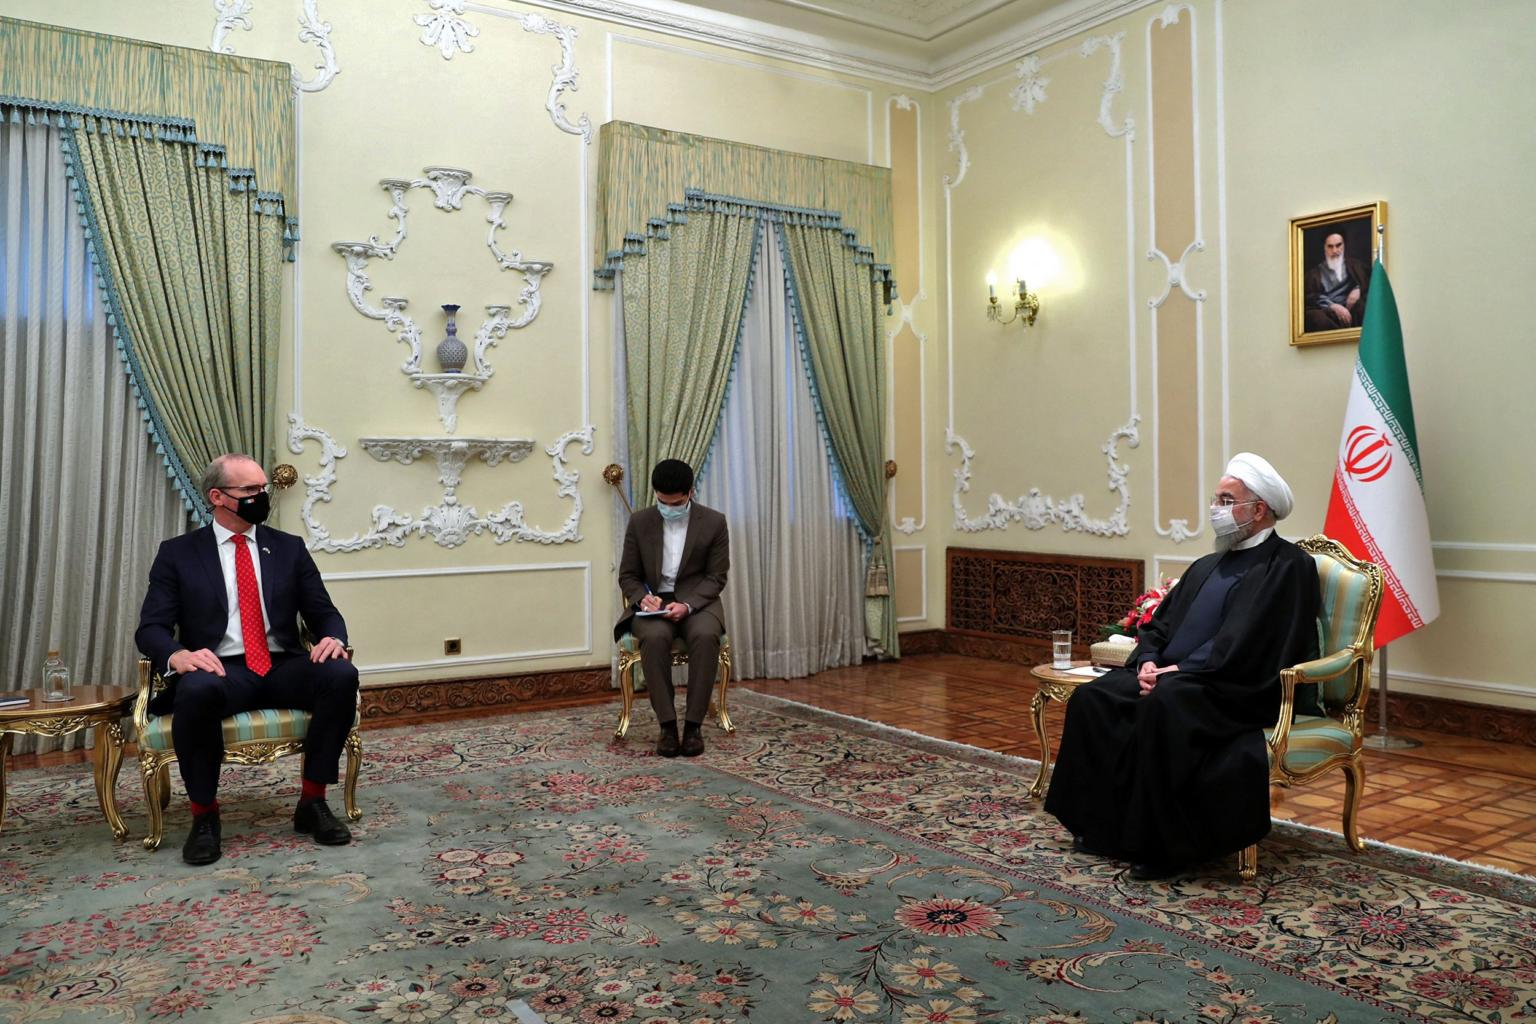 Iran president Rouhani urges Europe to avoid threats or pressure over nuclear deal